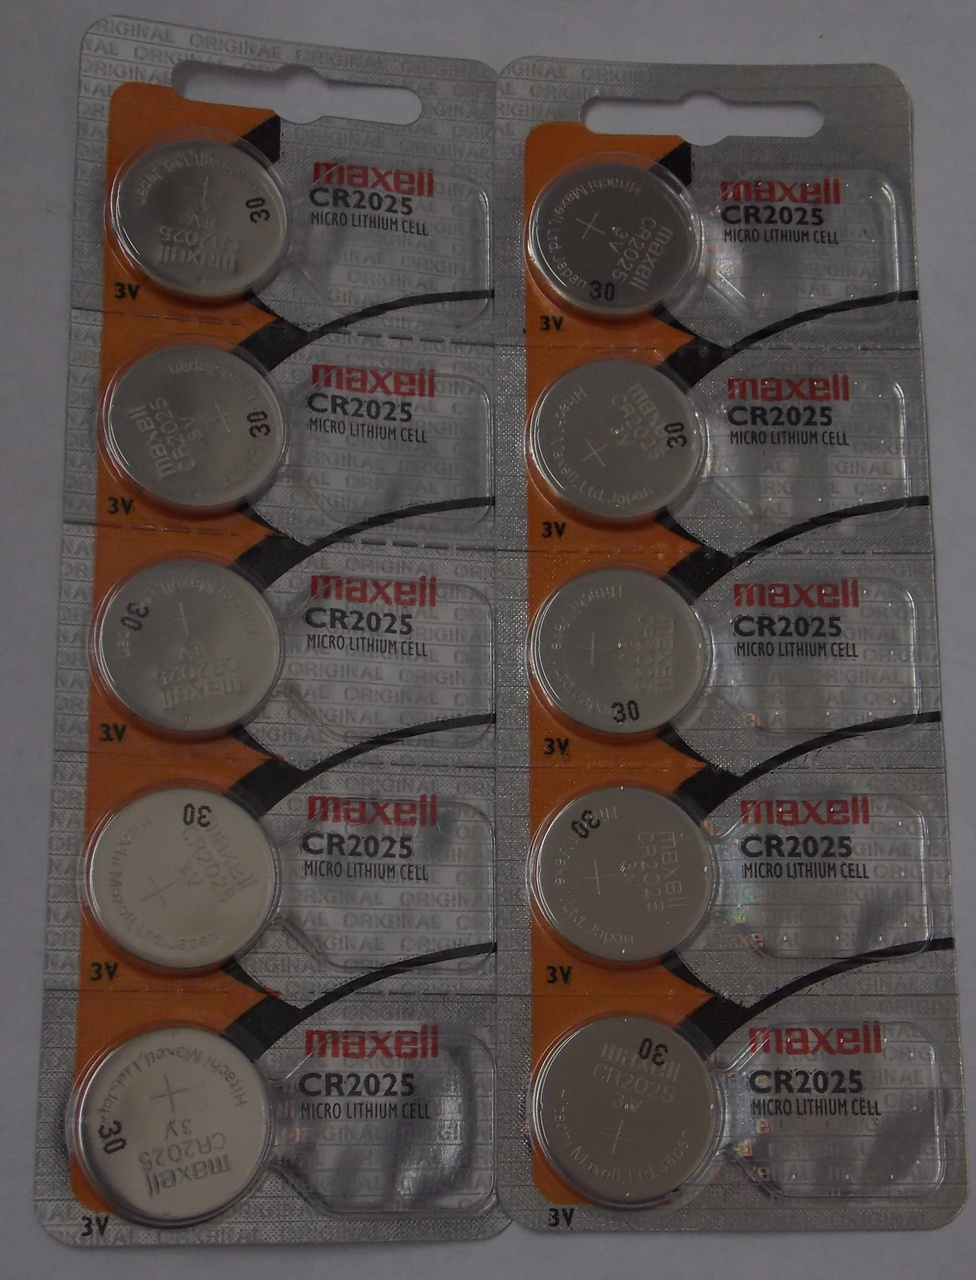 Maxell CR2025  3 Volt Lithium Coin Battery - 10 Pack - FREE SHIPPING!